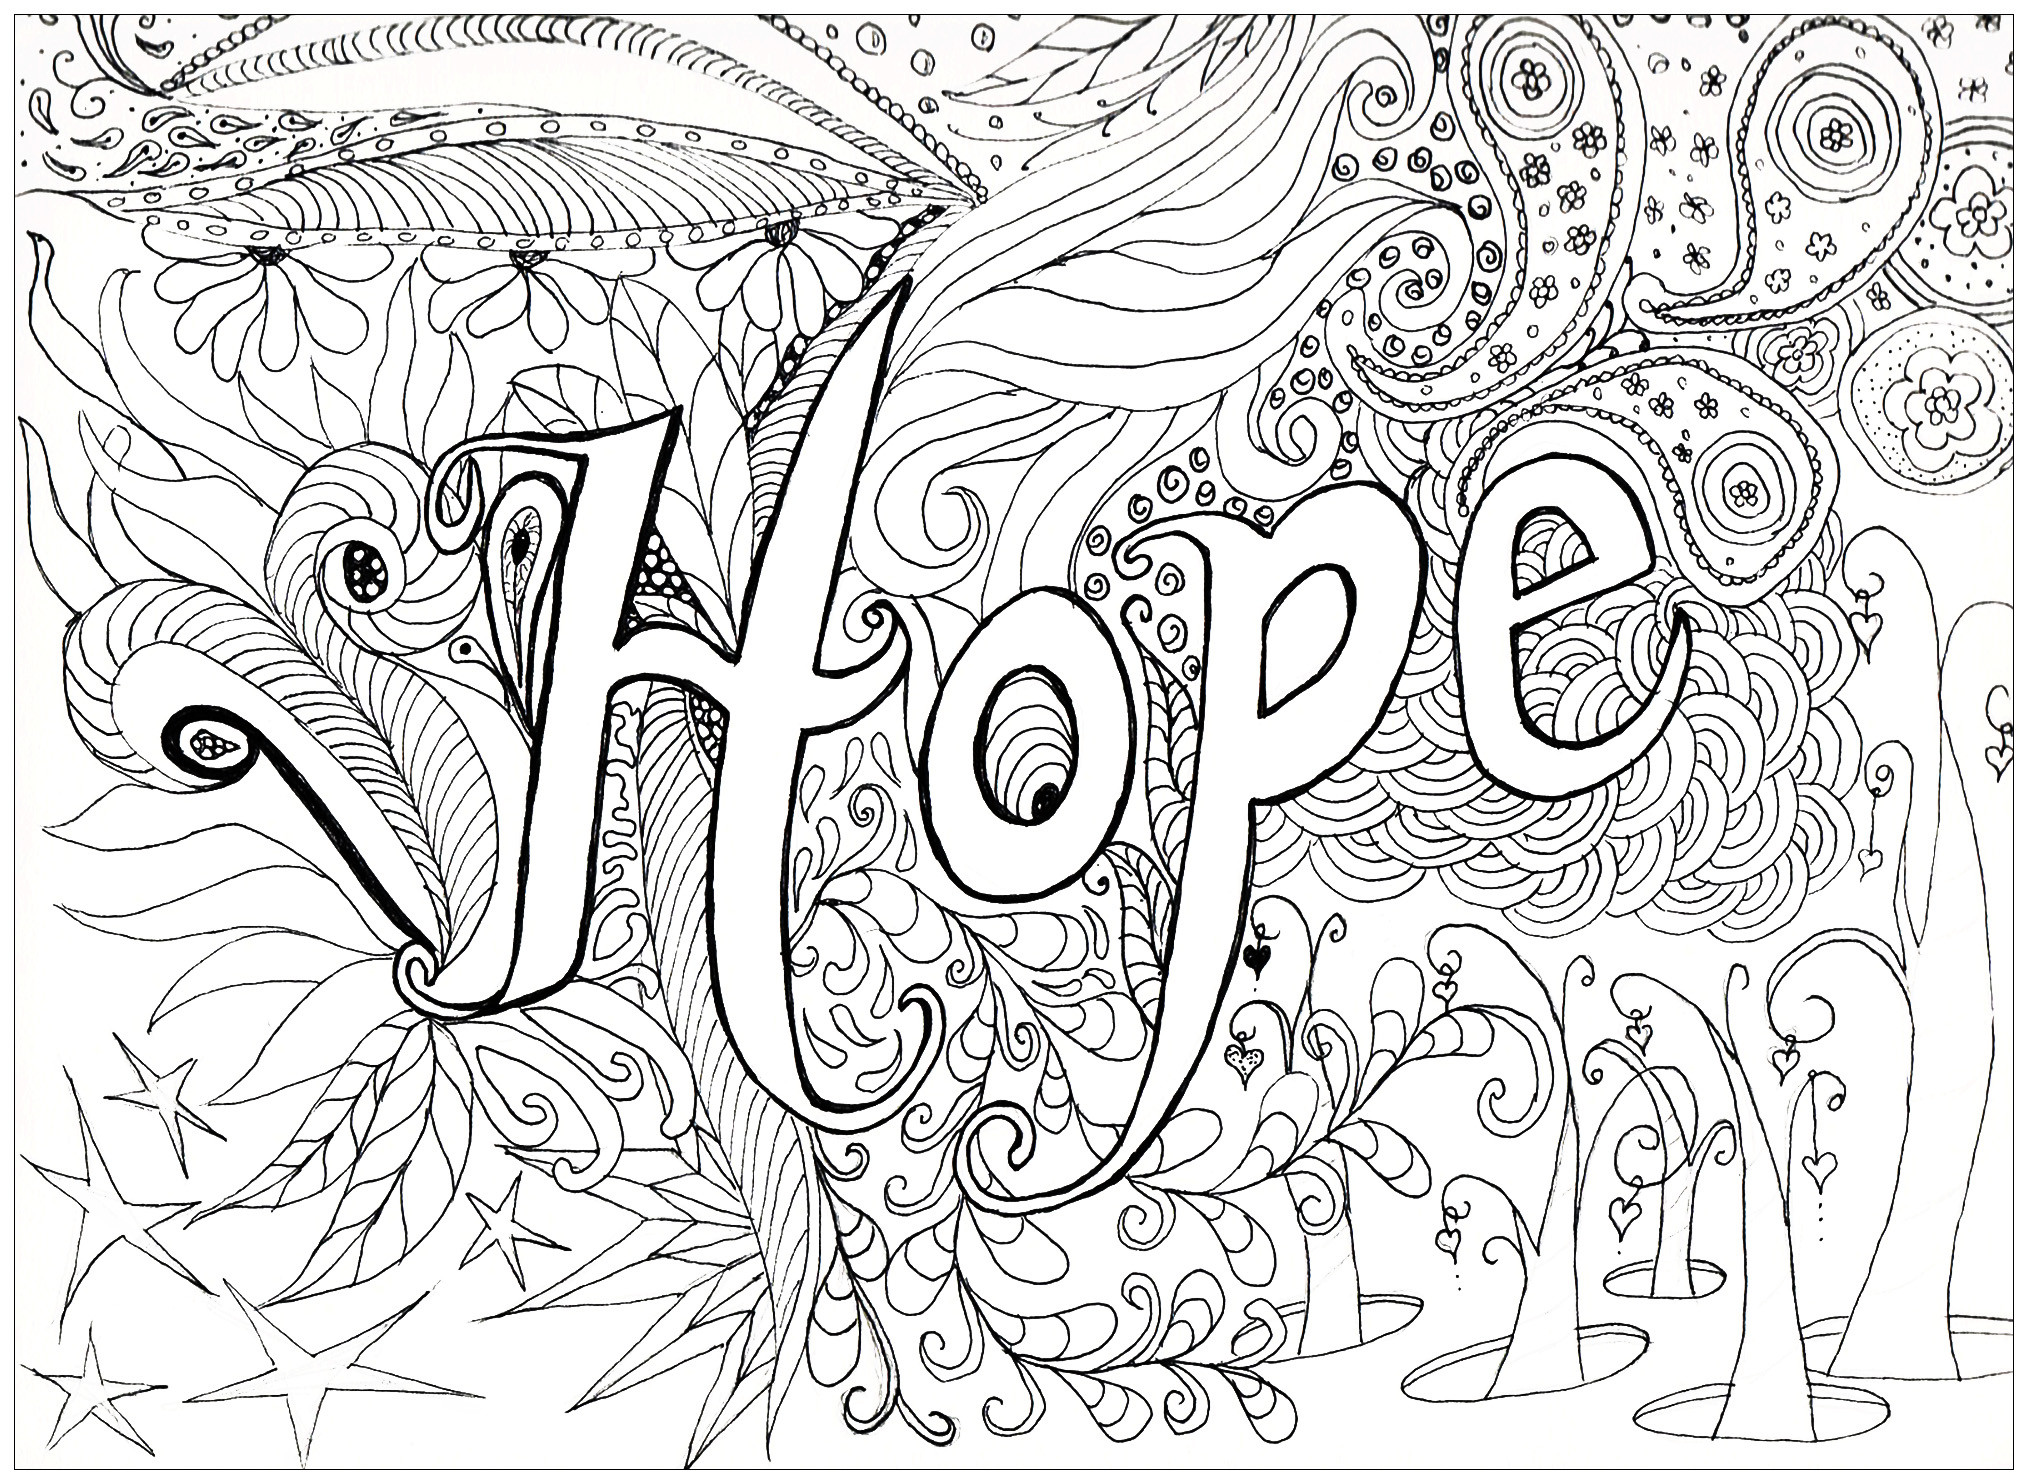 Adult Stress Coloring Books  Hope Anti stress Adult Coloring Pages Page 3